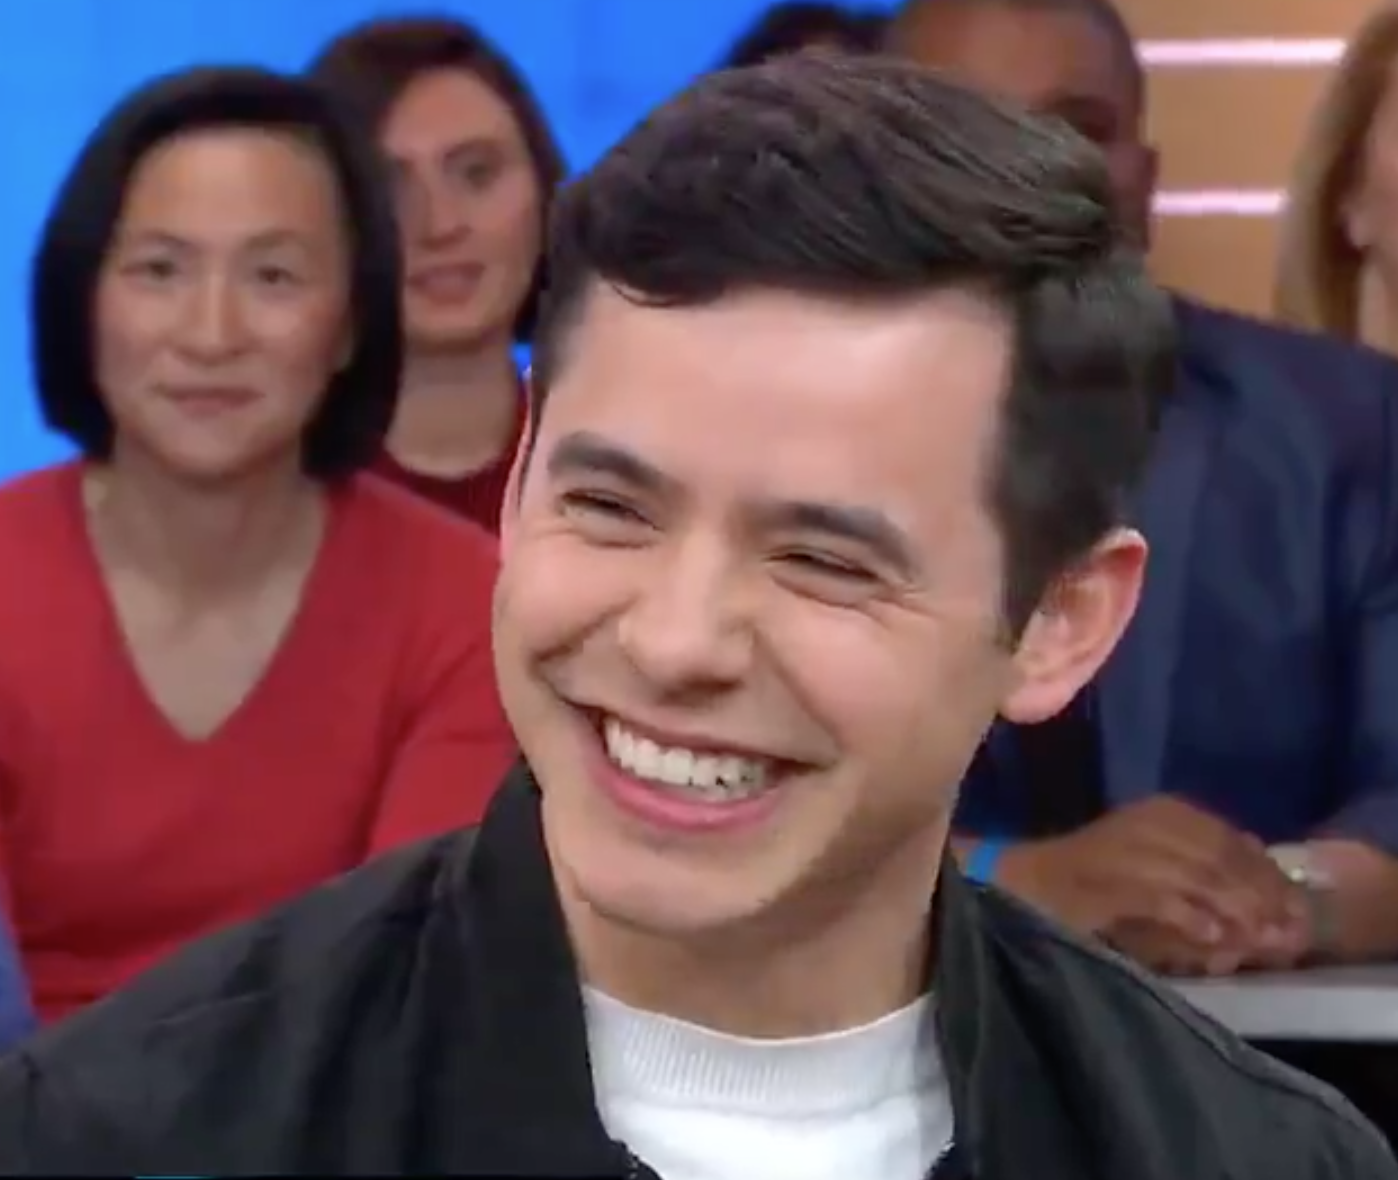 David Archuleta GMA screencap 3